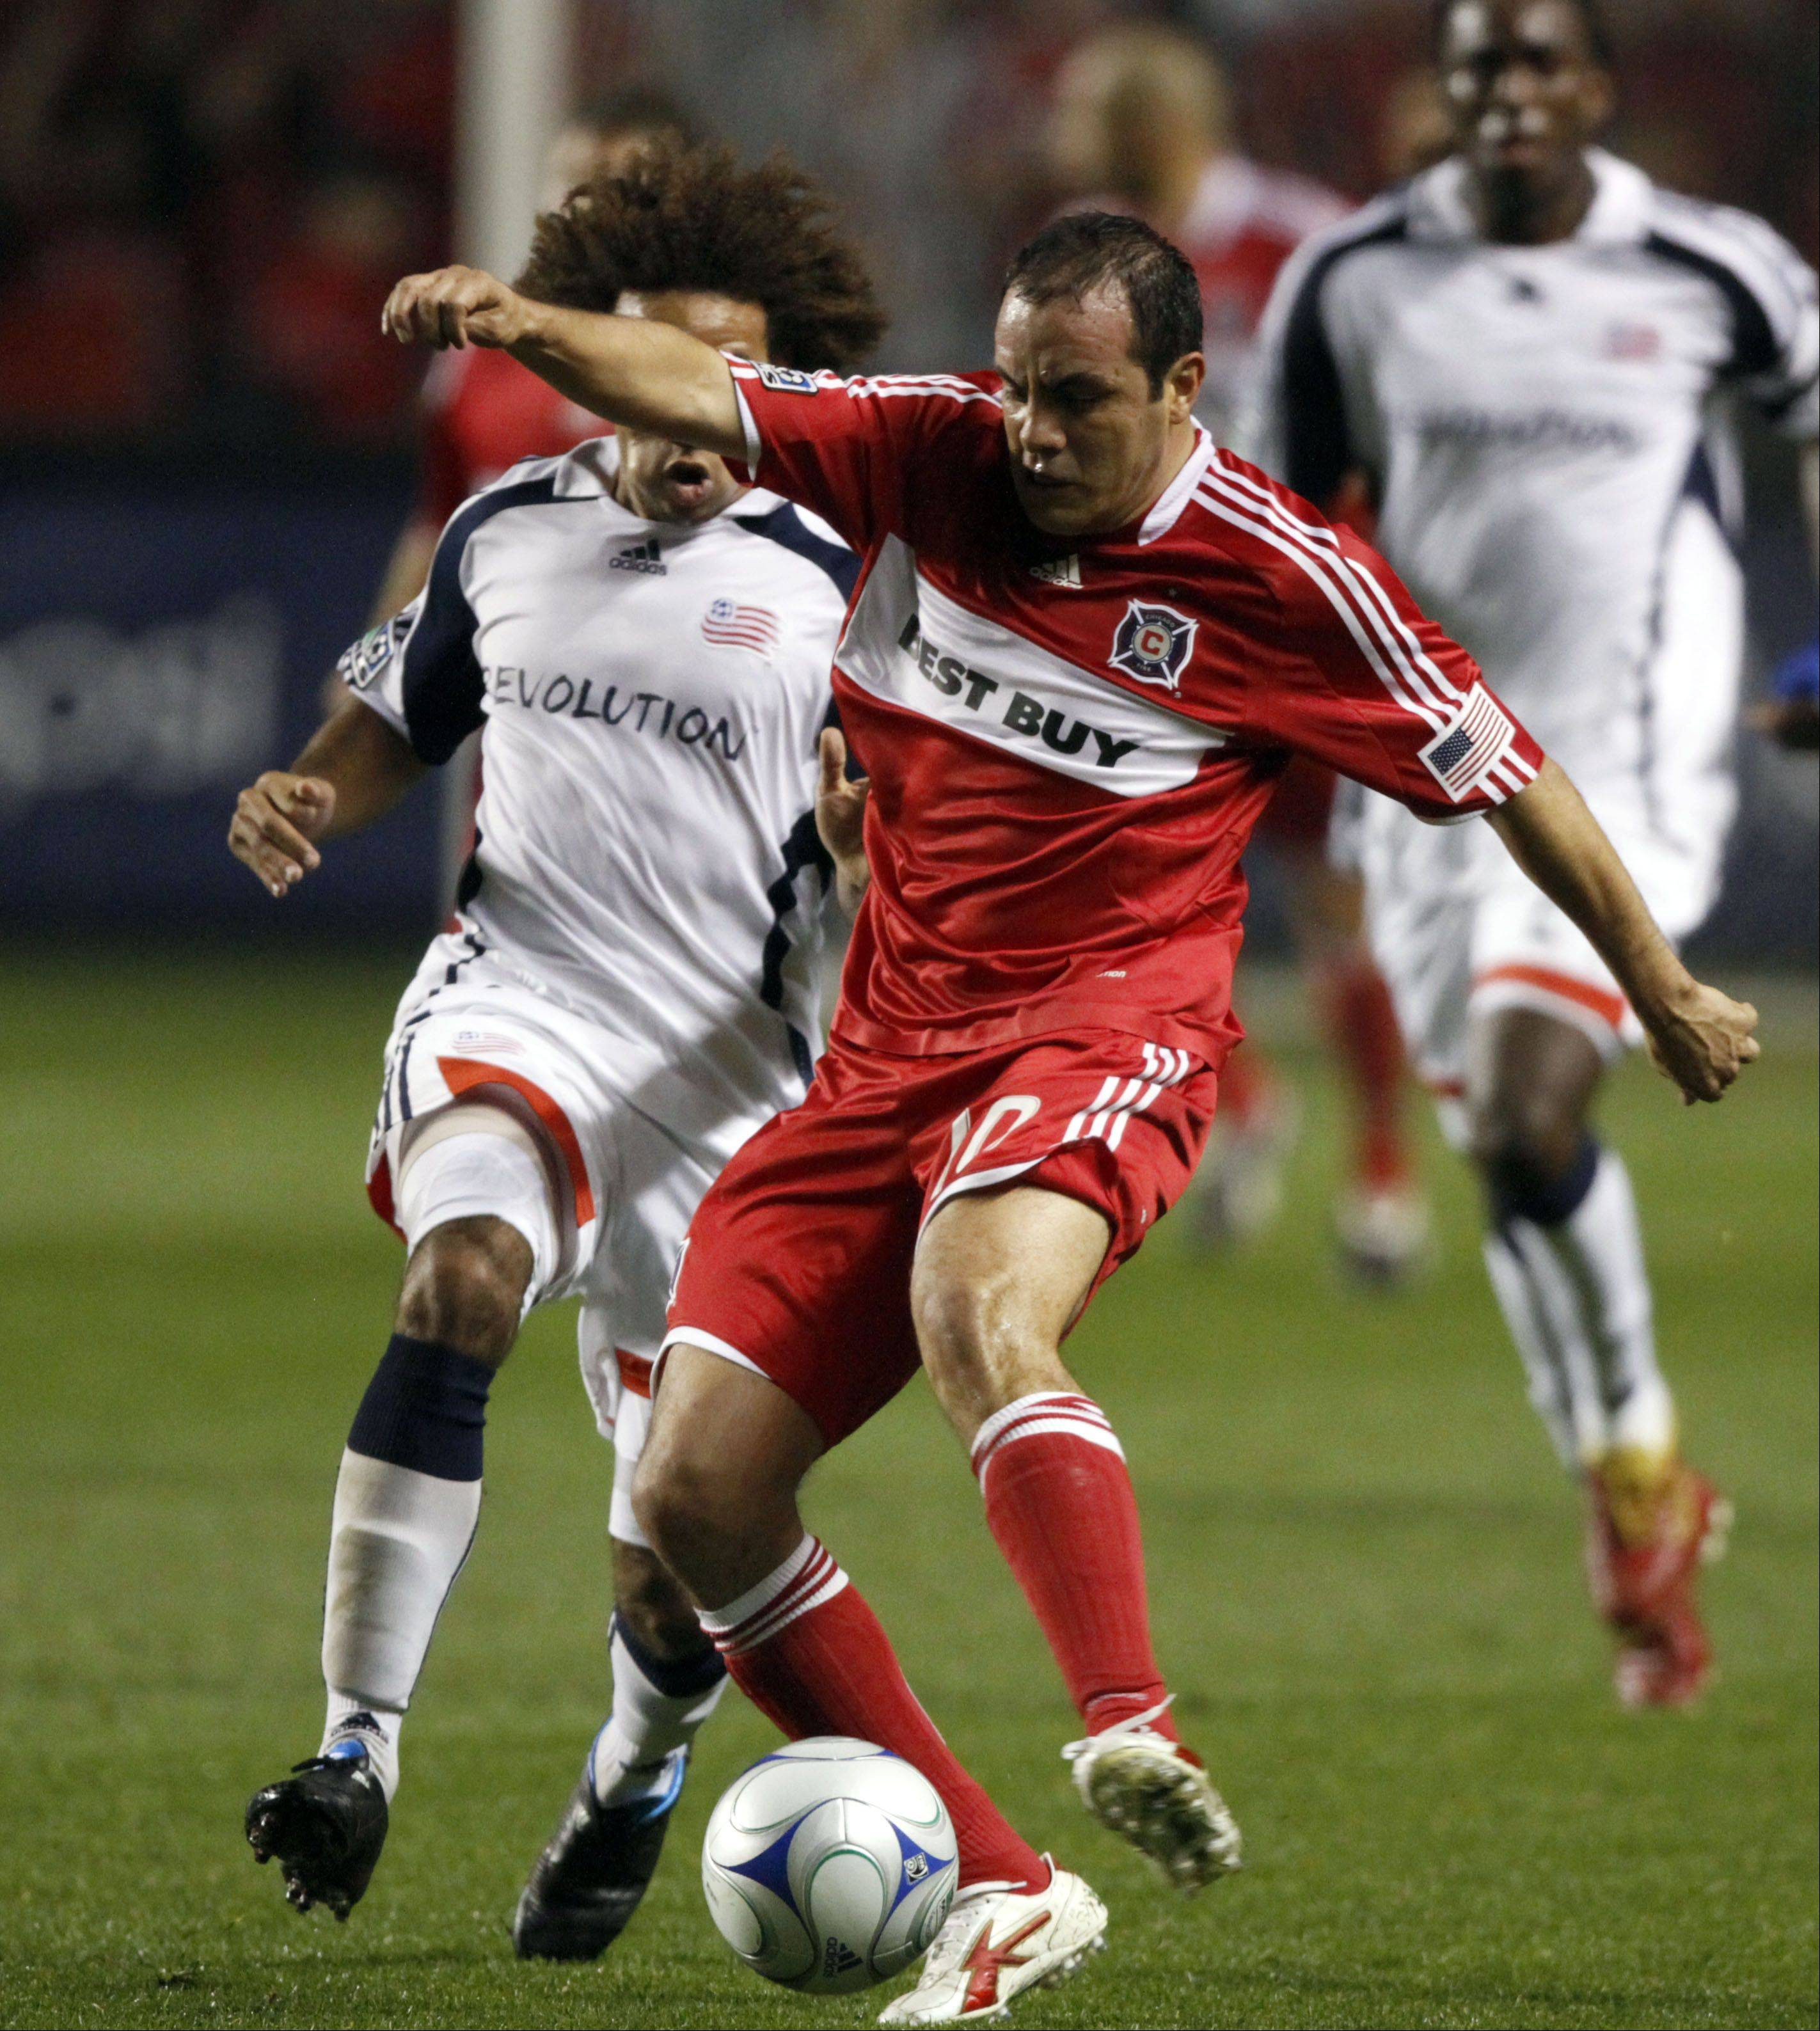 New England Revolution's Kevin Alston, left, defends as Chicago Fire's Cuauhtemoc Blanco moves the ball upfield during the first half of an MLS soccer match Saturday, Nov. 7, 2009, in Bridgeview, Ill.